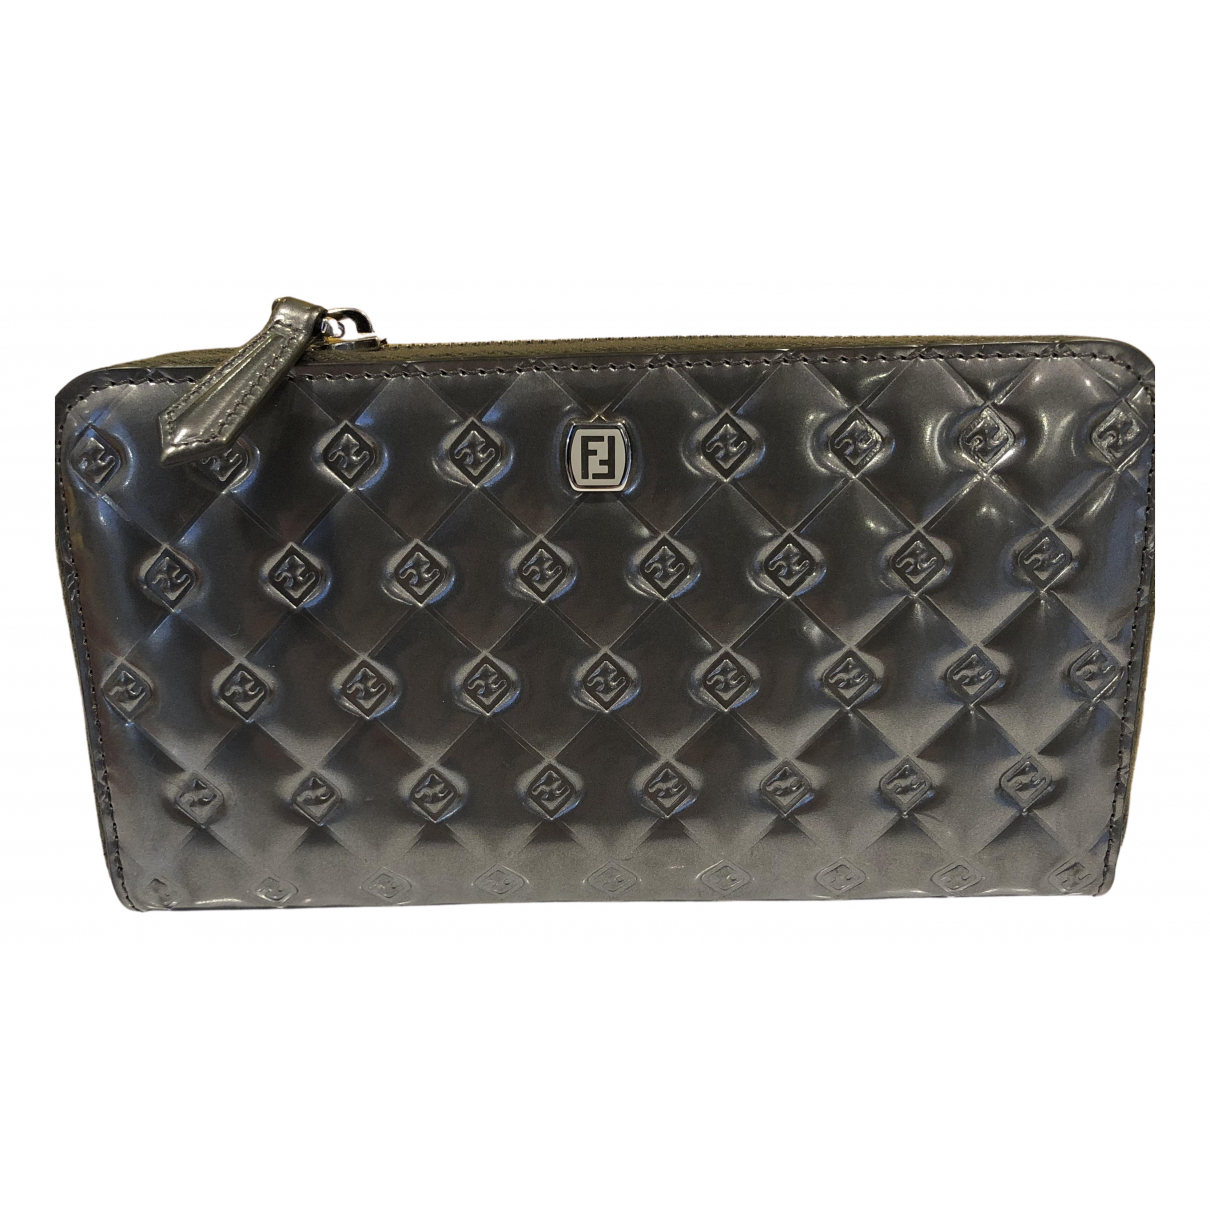 Fendi N Grey Patent leather wallet for Women N